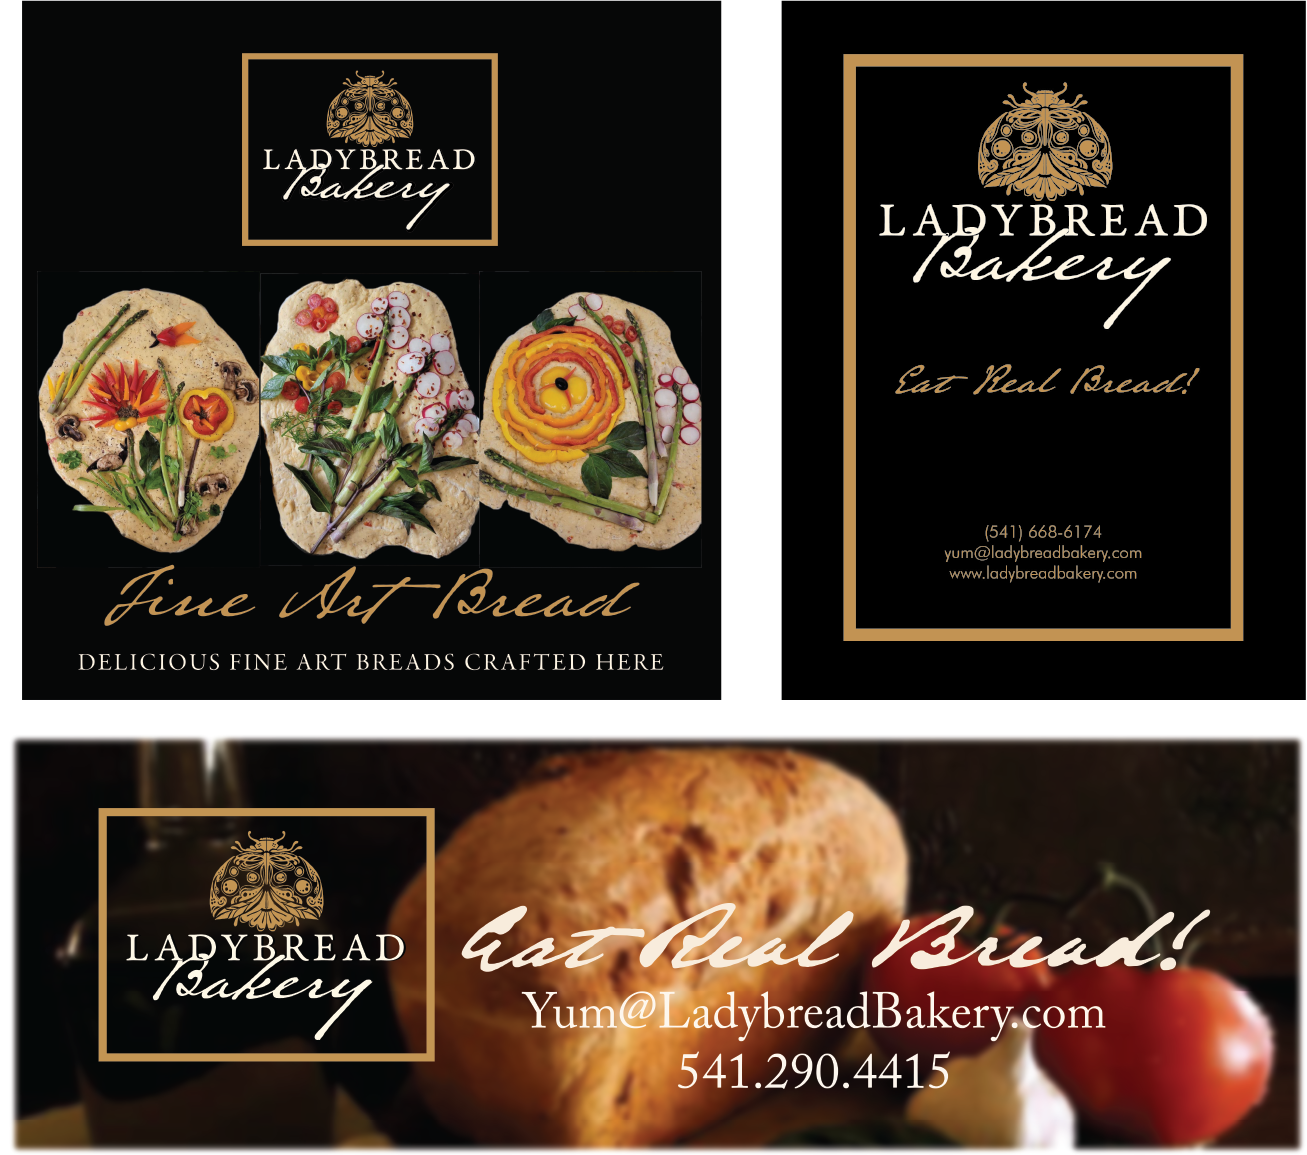 Ladybread Bakery signs and banners